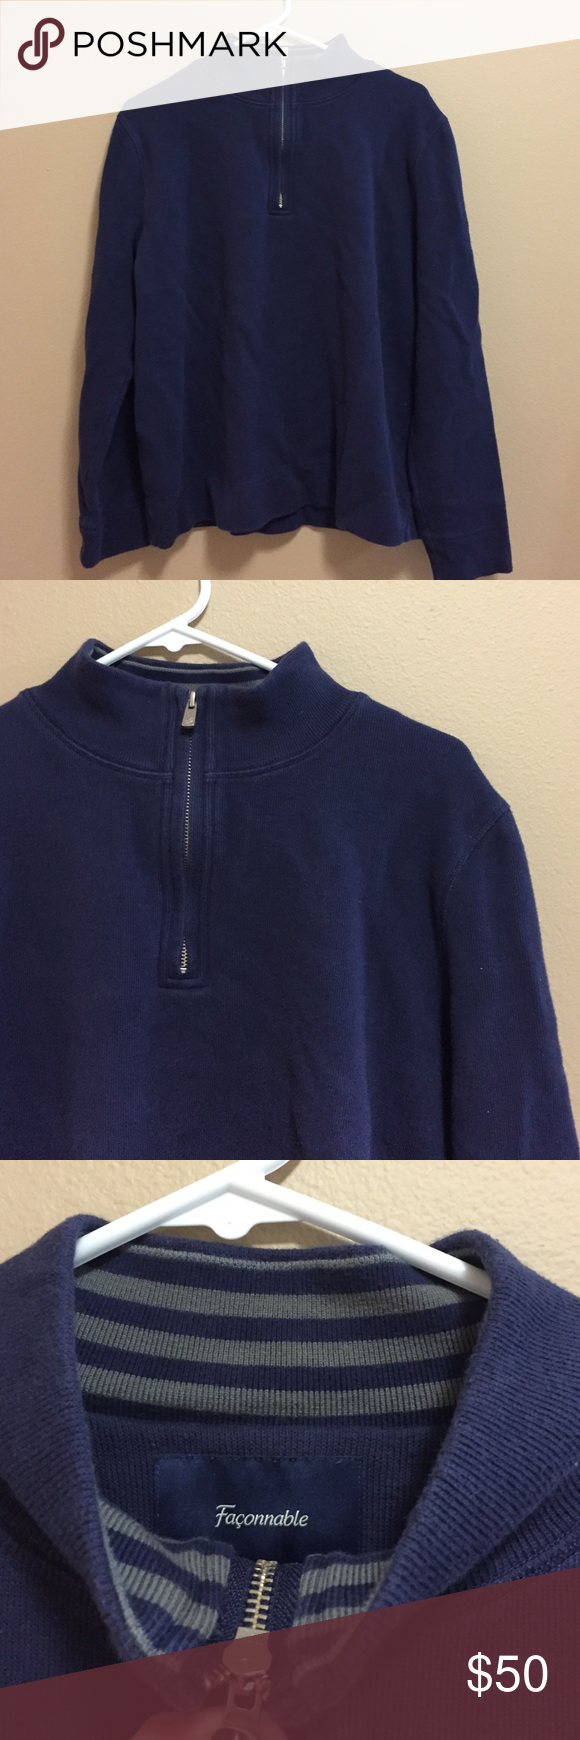 Faconnable Men's sweater | Navy blue, Navy and Cotton